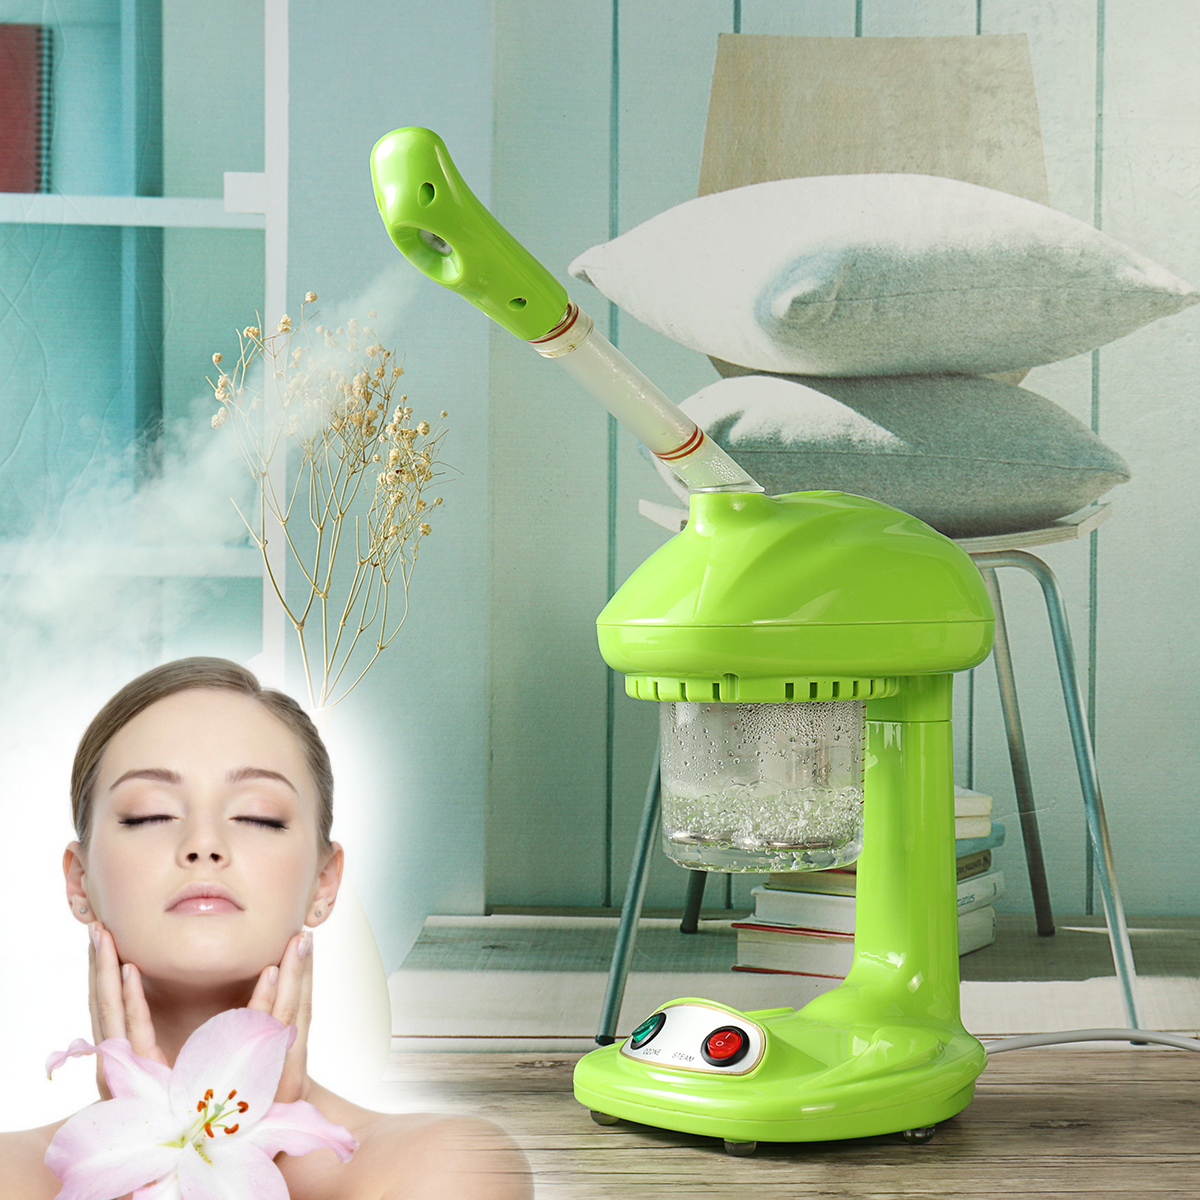 220V 480W 360° Rotatable Face Steam Hot Sprayer